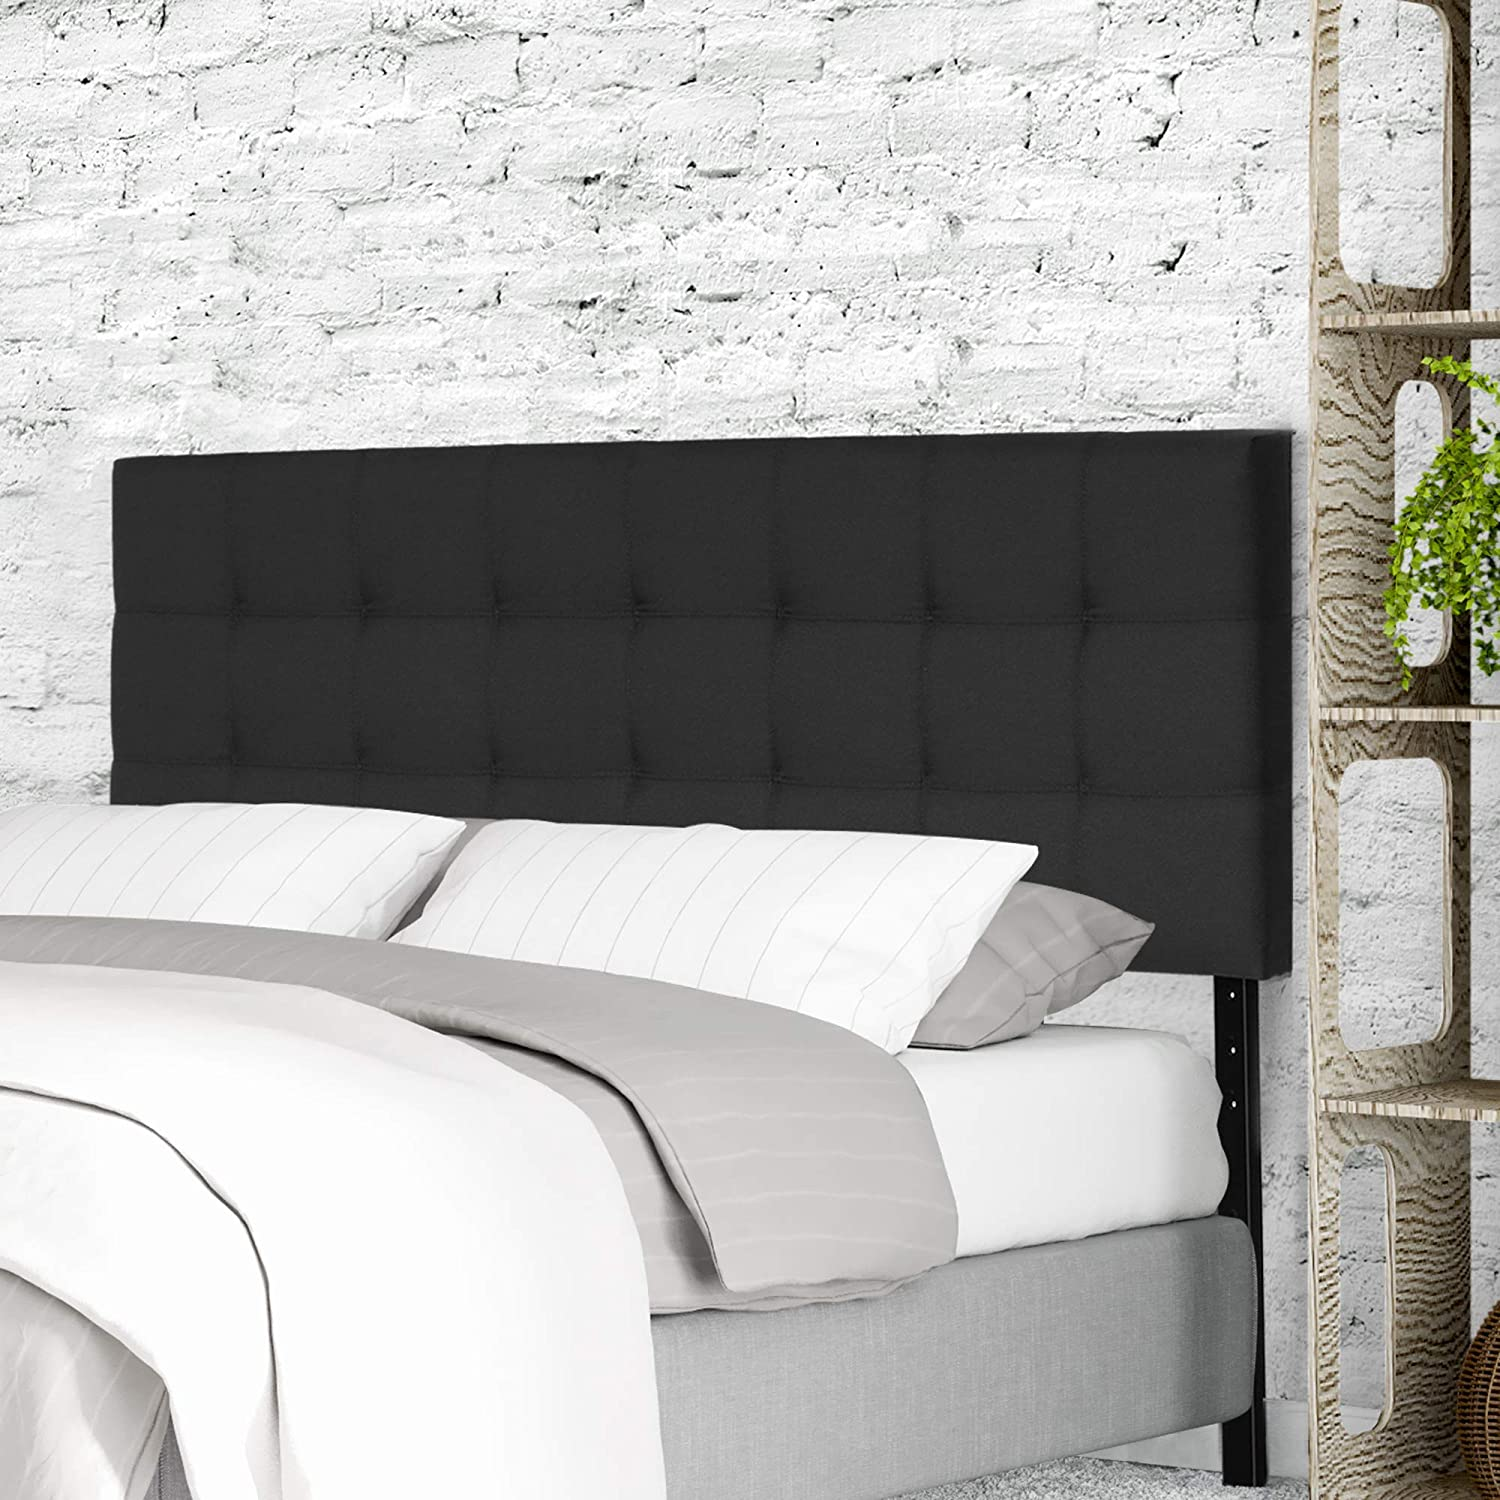 FURINNO Limited time sale 70% OFF Outlet Roanne Tufted Twin Black Headboard